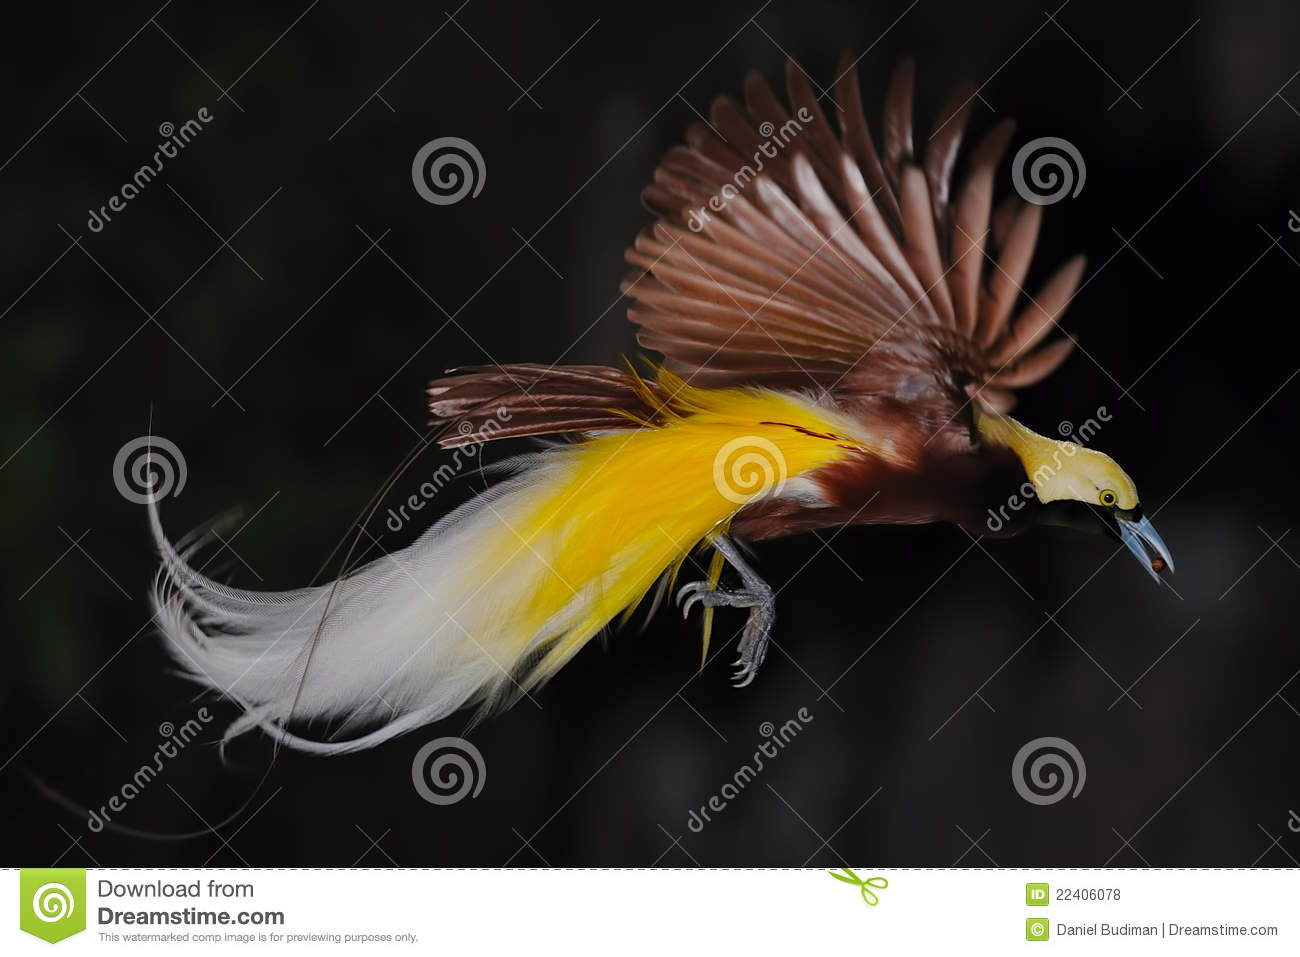 Bird Of Paradise In Flight Royalty Free Stock Photos - Image: 22406078